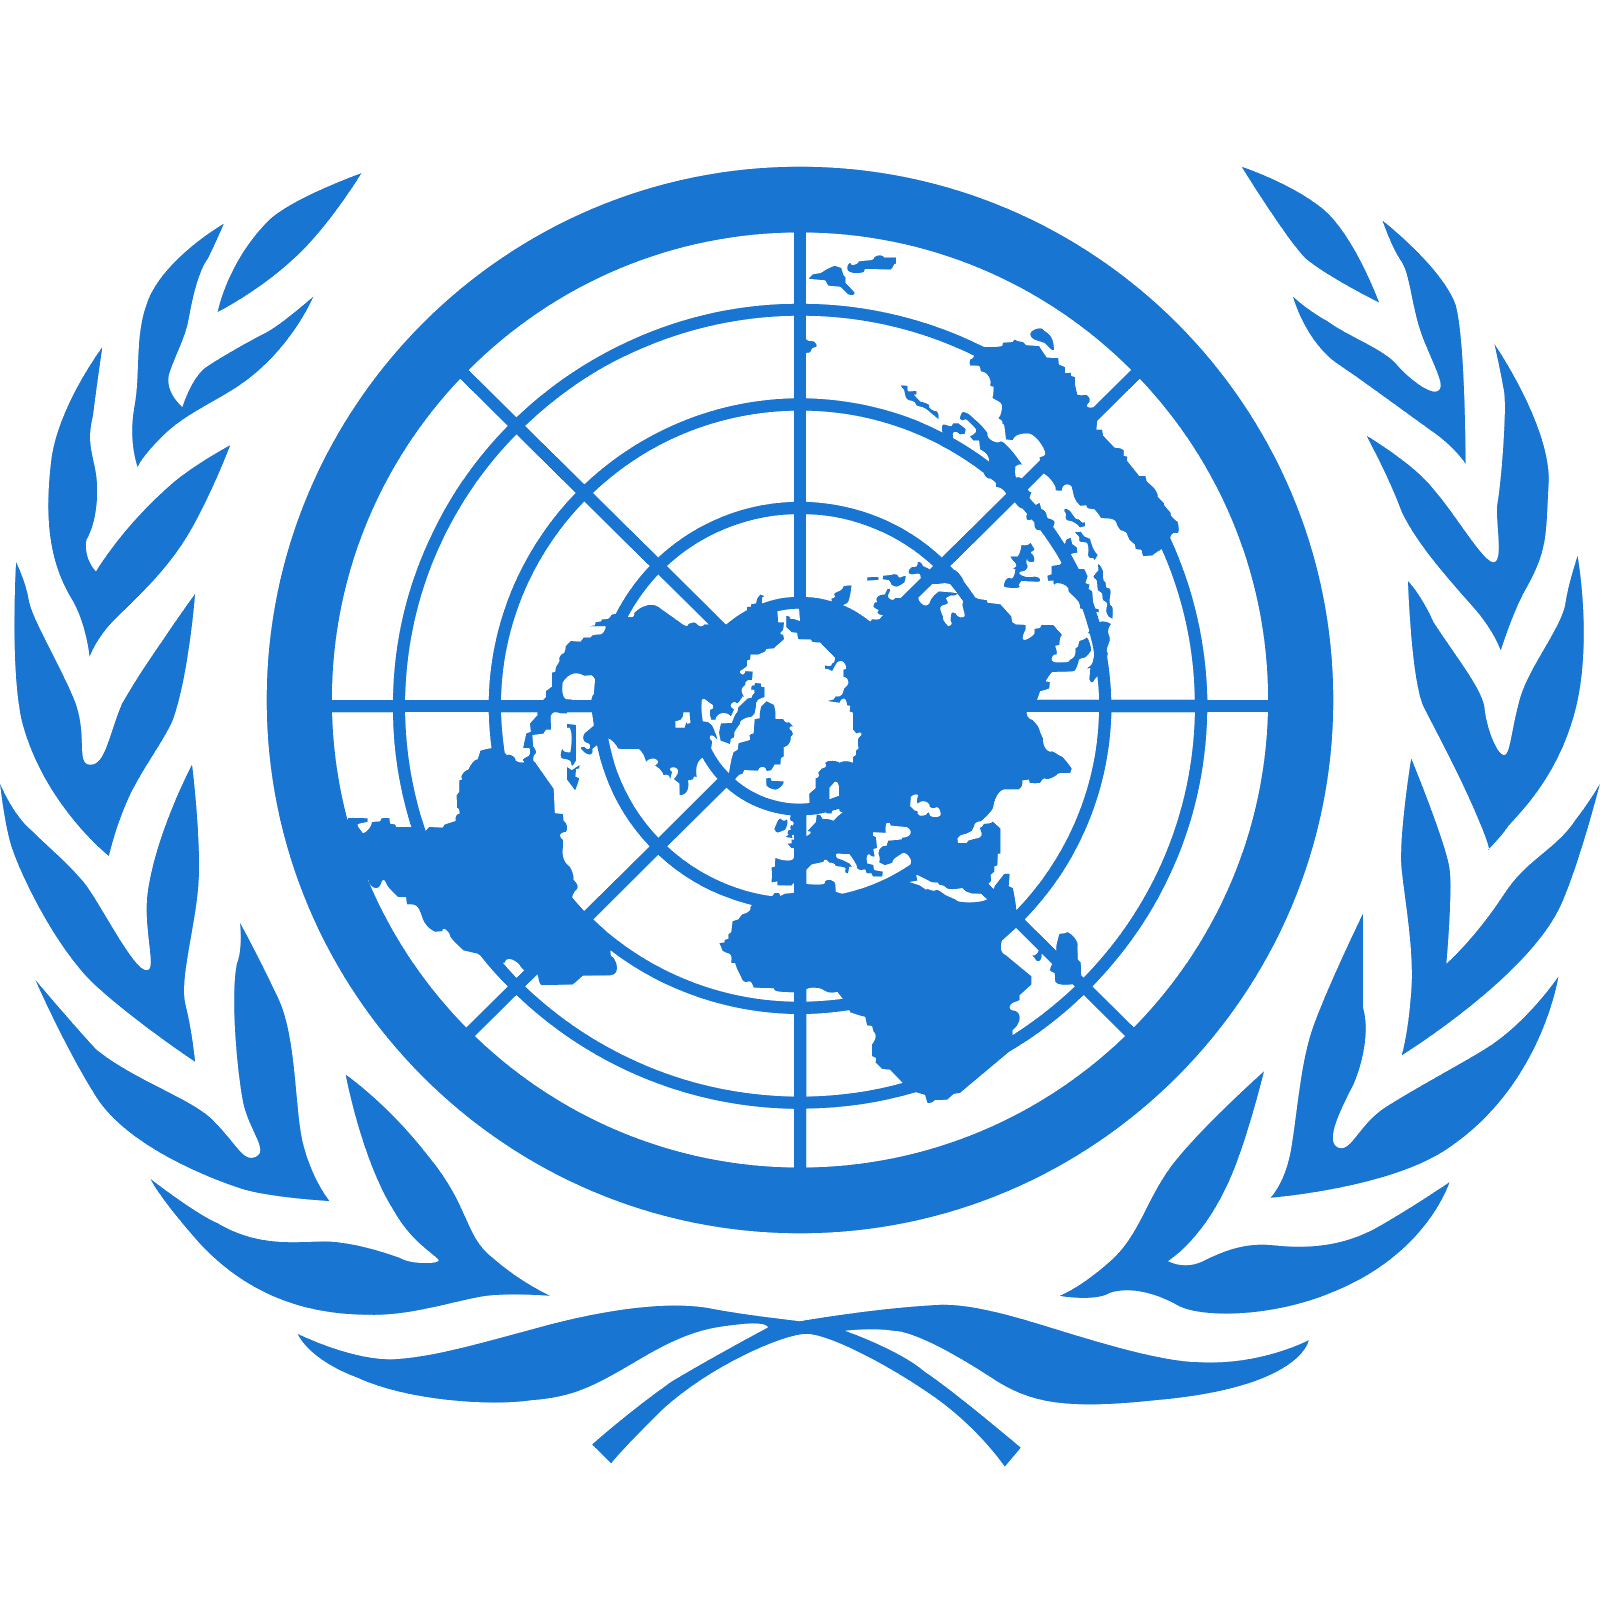 united-nations-logo-vector-wwwpixsharkcom-images-182620.png